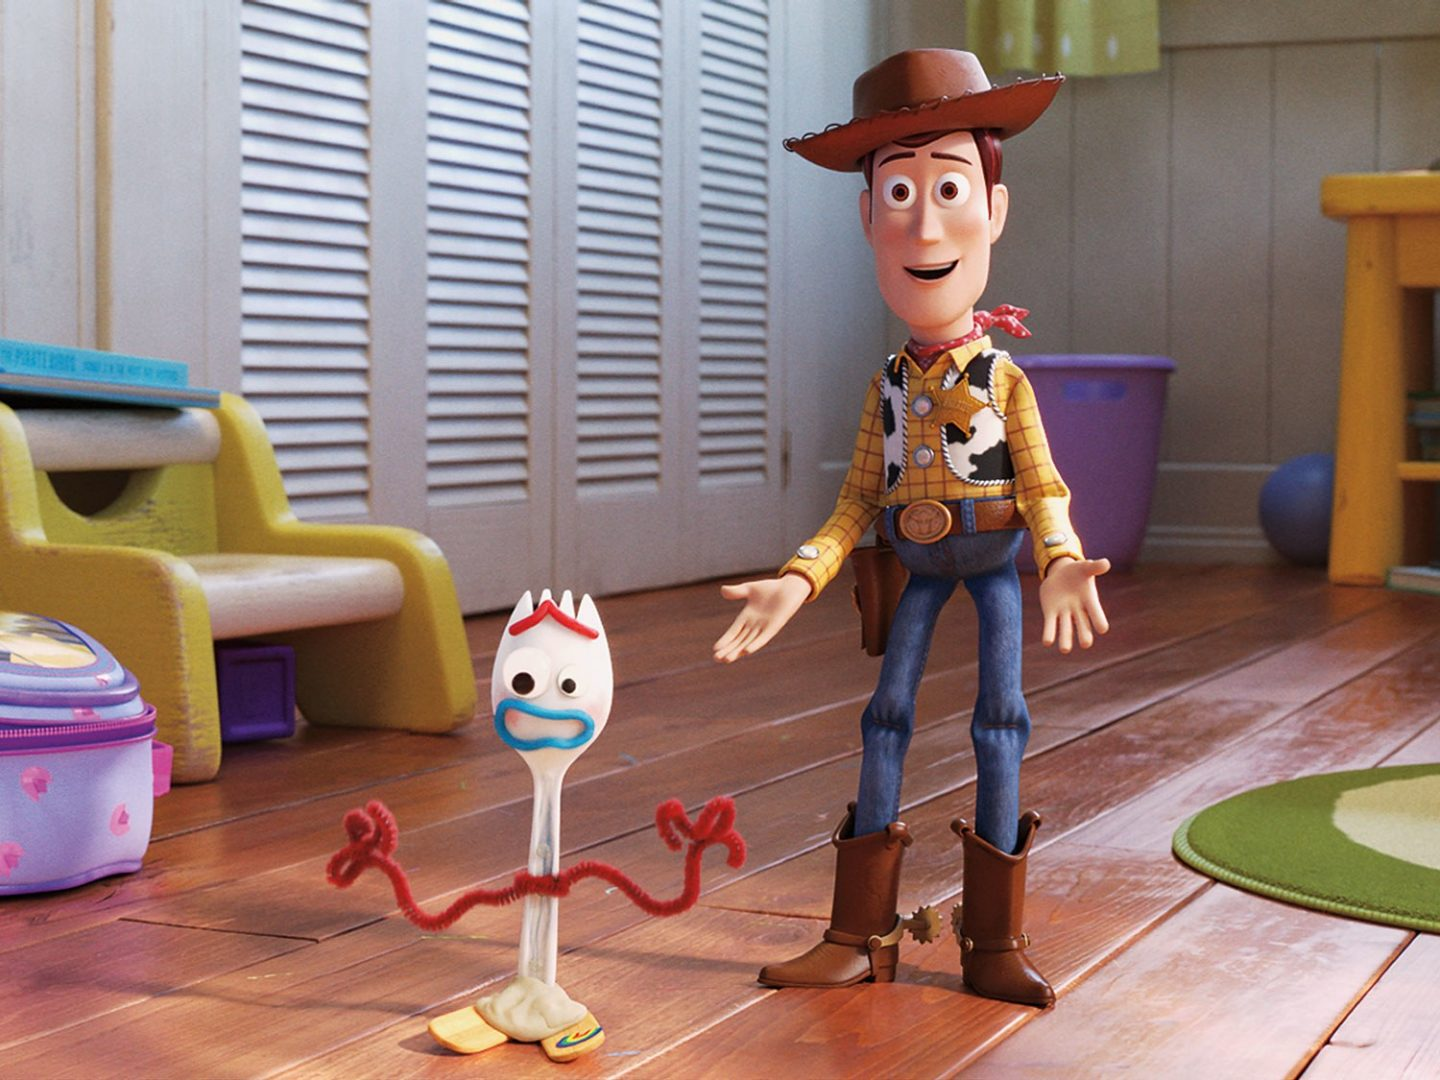 Toy Story 4. Weekend Watch List. Film Blog. UK Blogger.